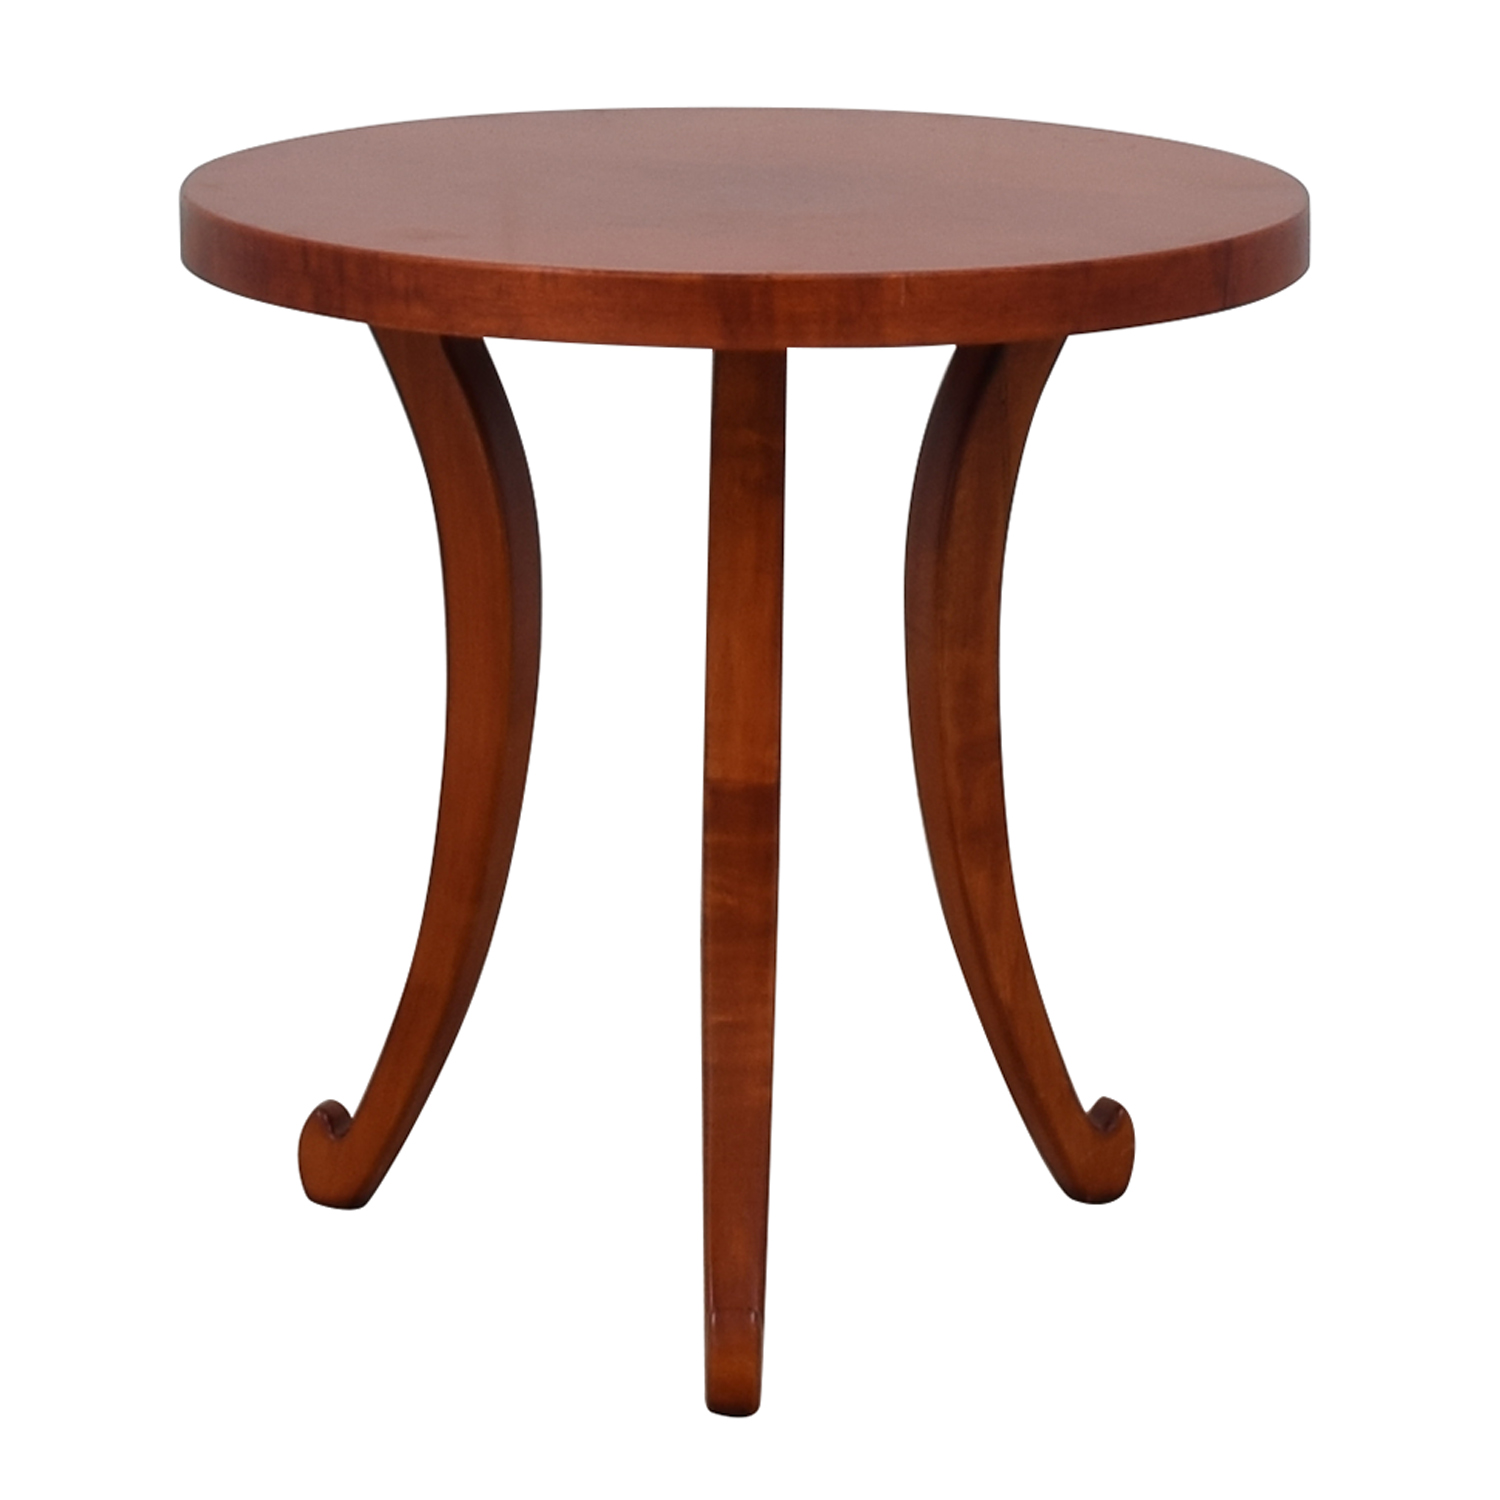 Dialogica Dialogica Side Table for sale